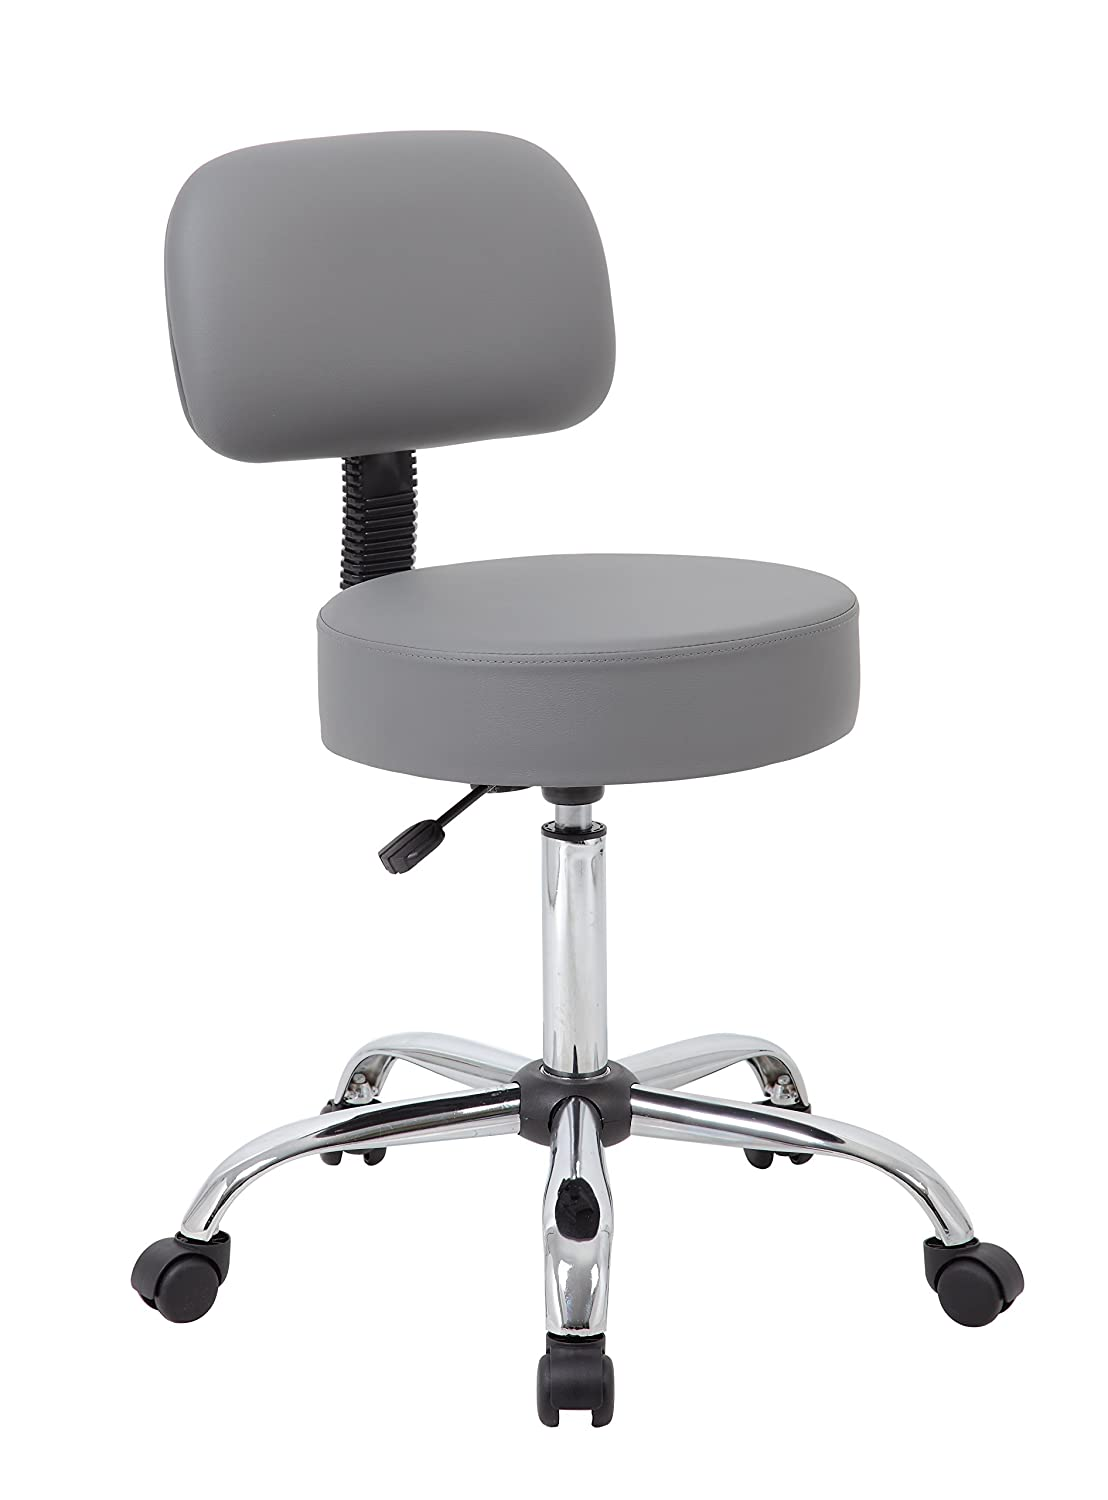 Boss Office Products Be Well Medical Spa Professional Adjustable Drafting Stool with Back, Grey